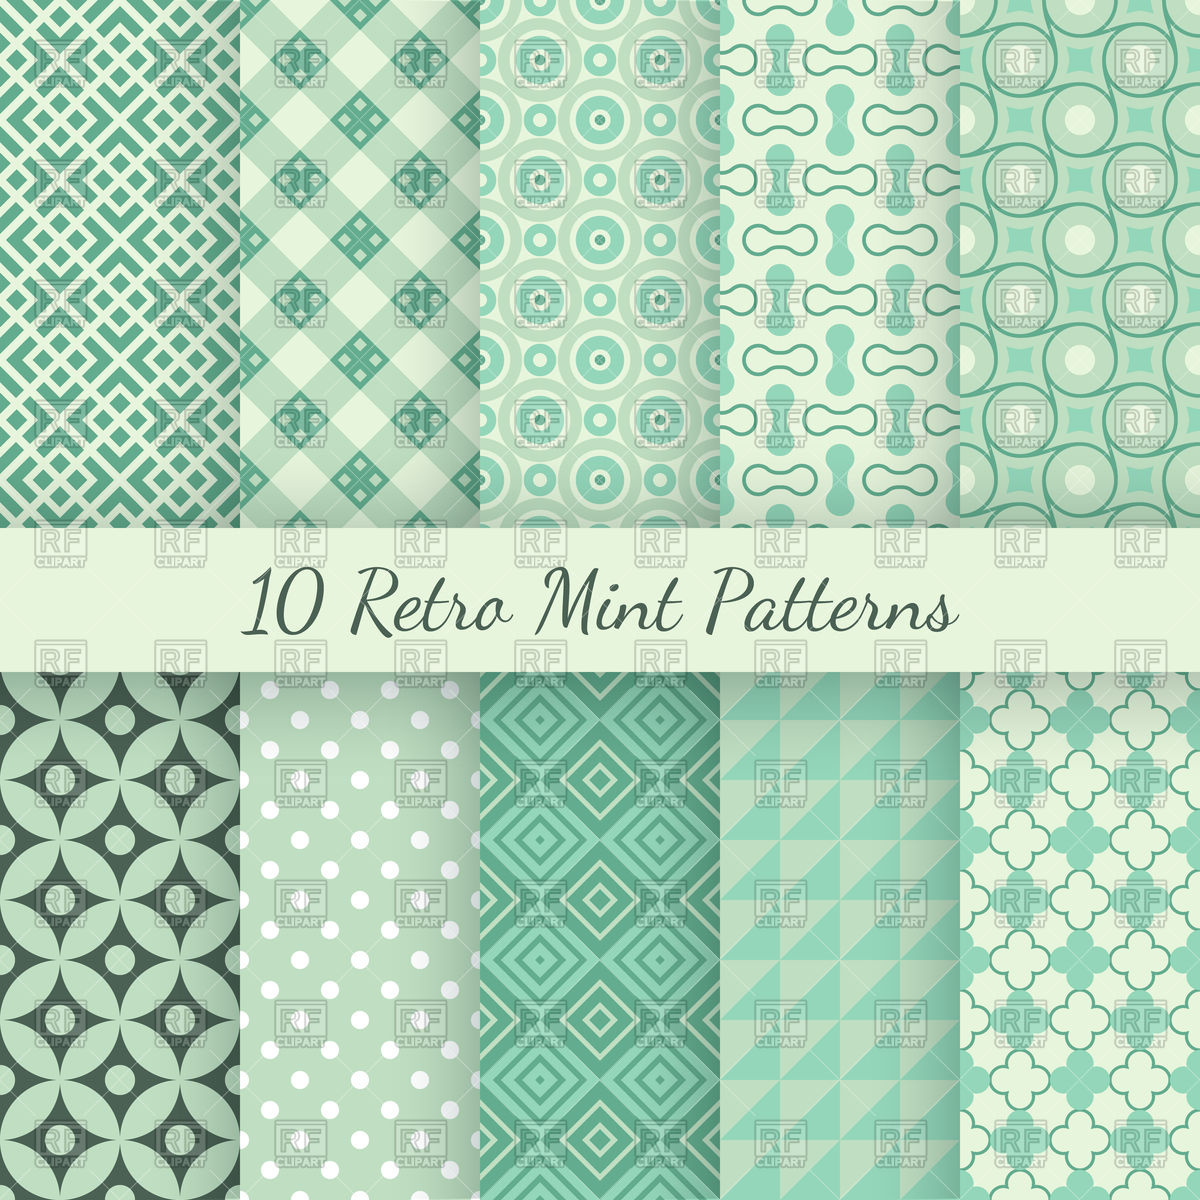 1200x1200 Retro Mint And Emerald Seamless Wallpaper Patterns Vector Image